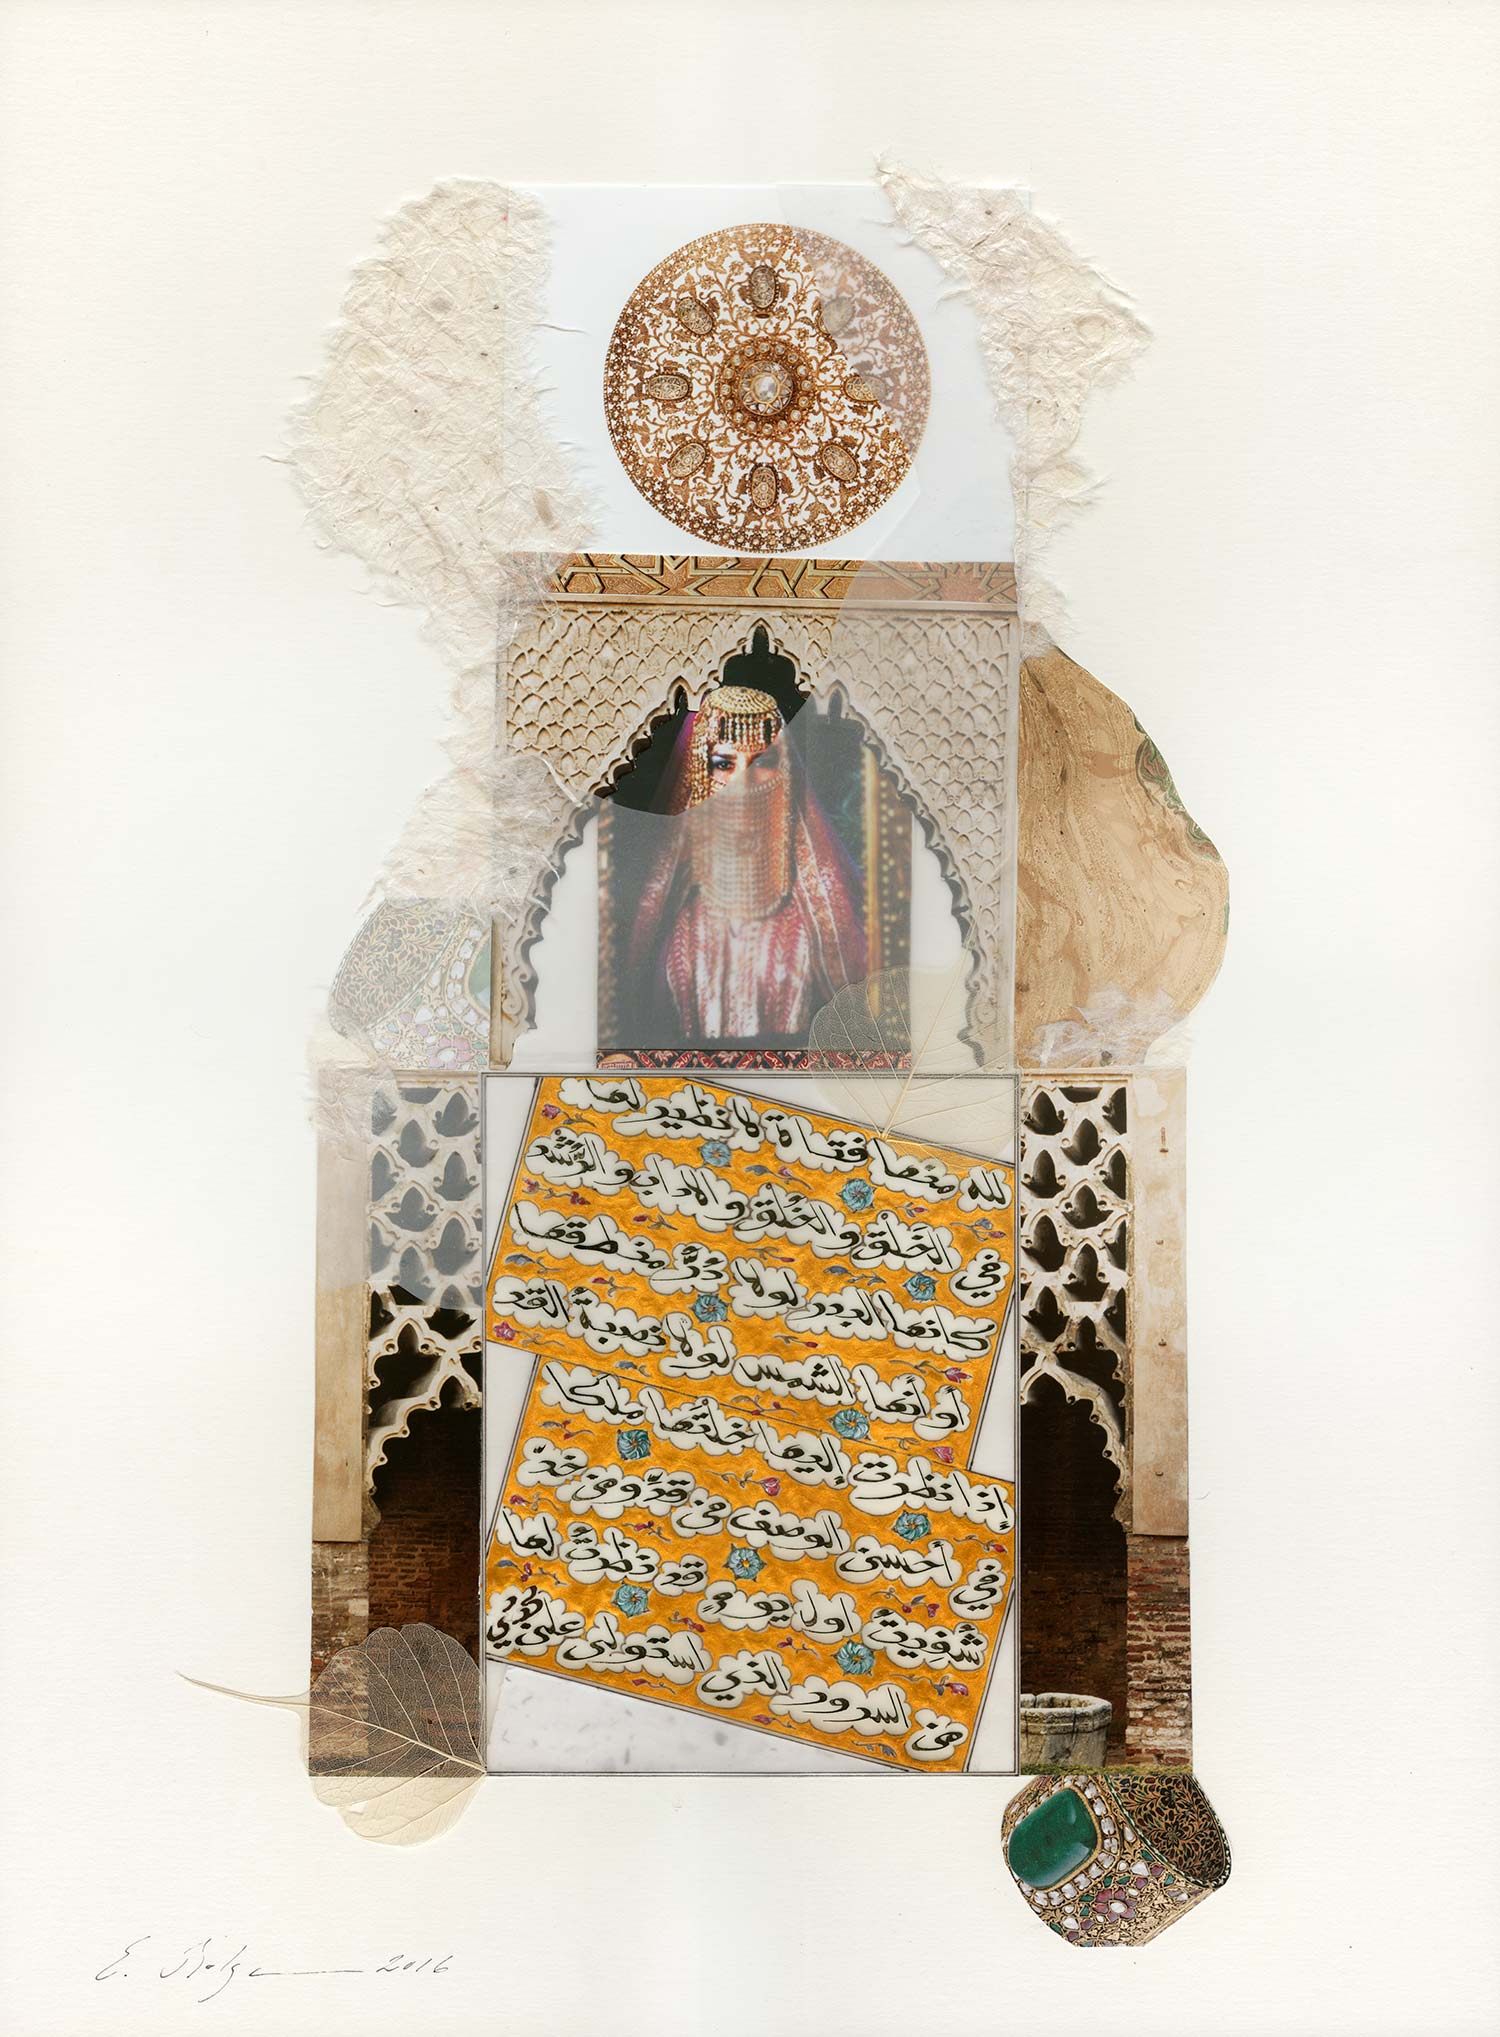 Bride  Private Collection Medina, Kingdom of Saudi Arabia Paper, Indian ink, watercolour,gold,dried leaf and gesso on solid mount board base 40 x 54 cm 2016